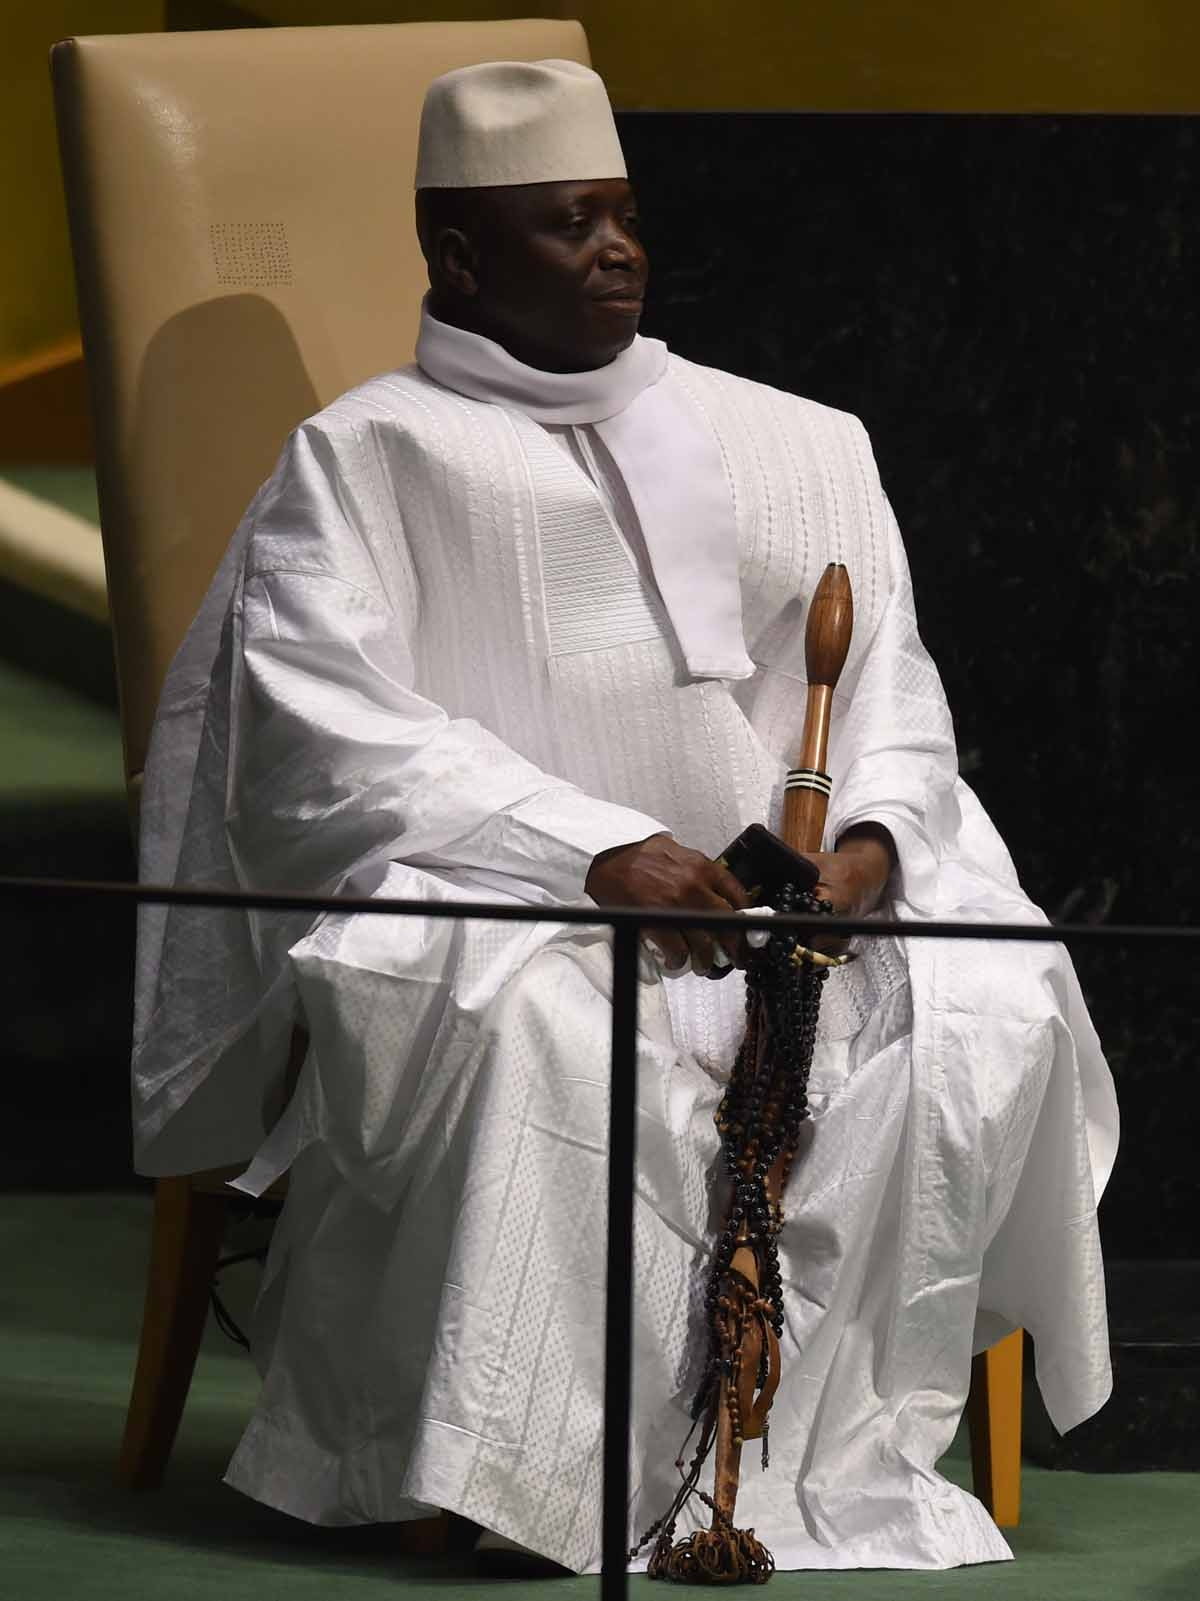 President of Gambia Al Hadji Yahya Jammeh waits to address the 69th session of the United Nations General Assembly September 25, 2014 at the United Nations in New York.